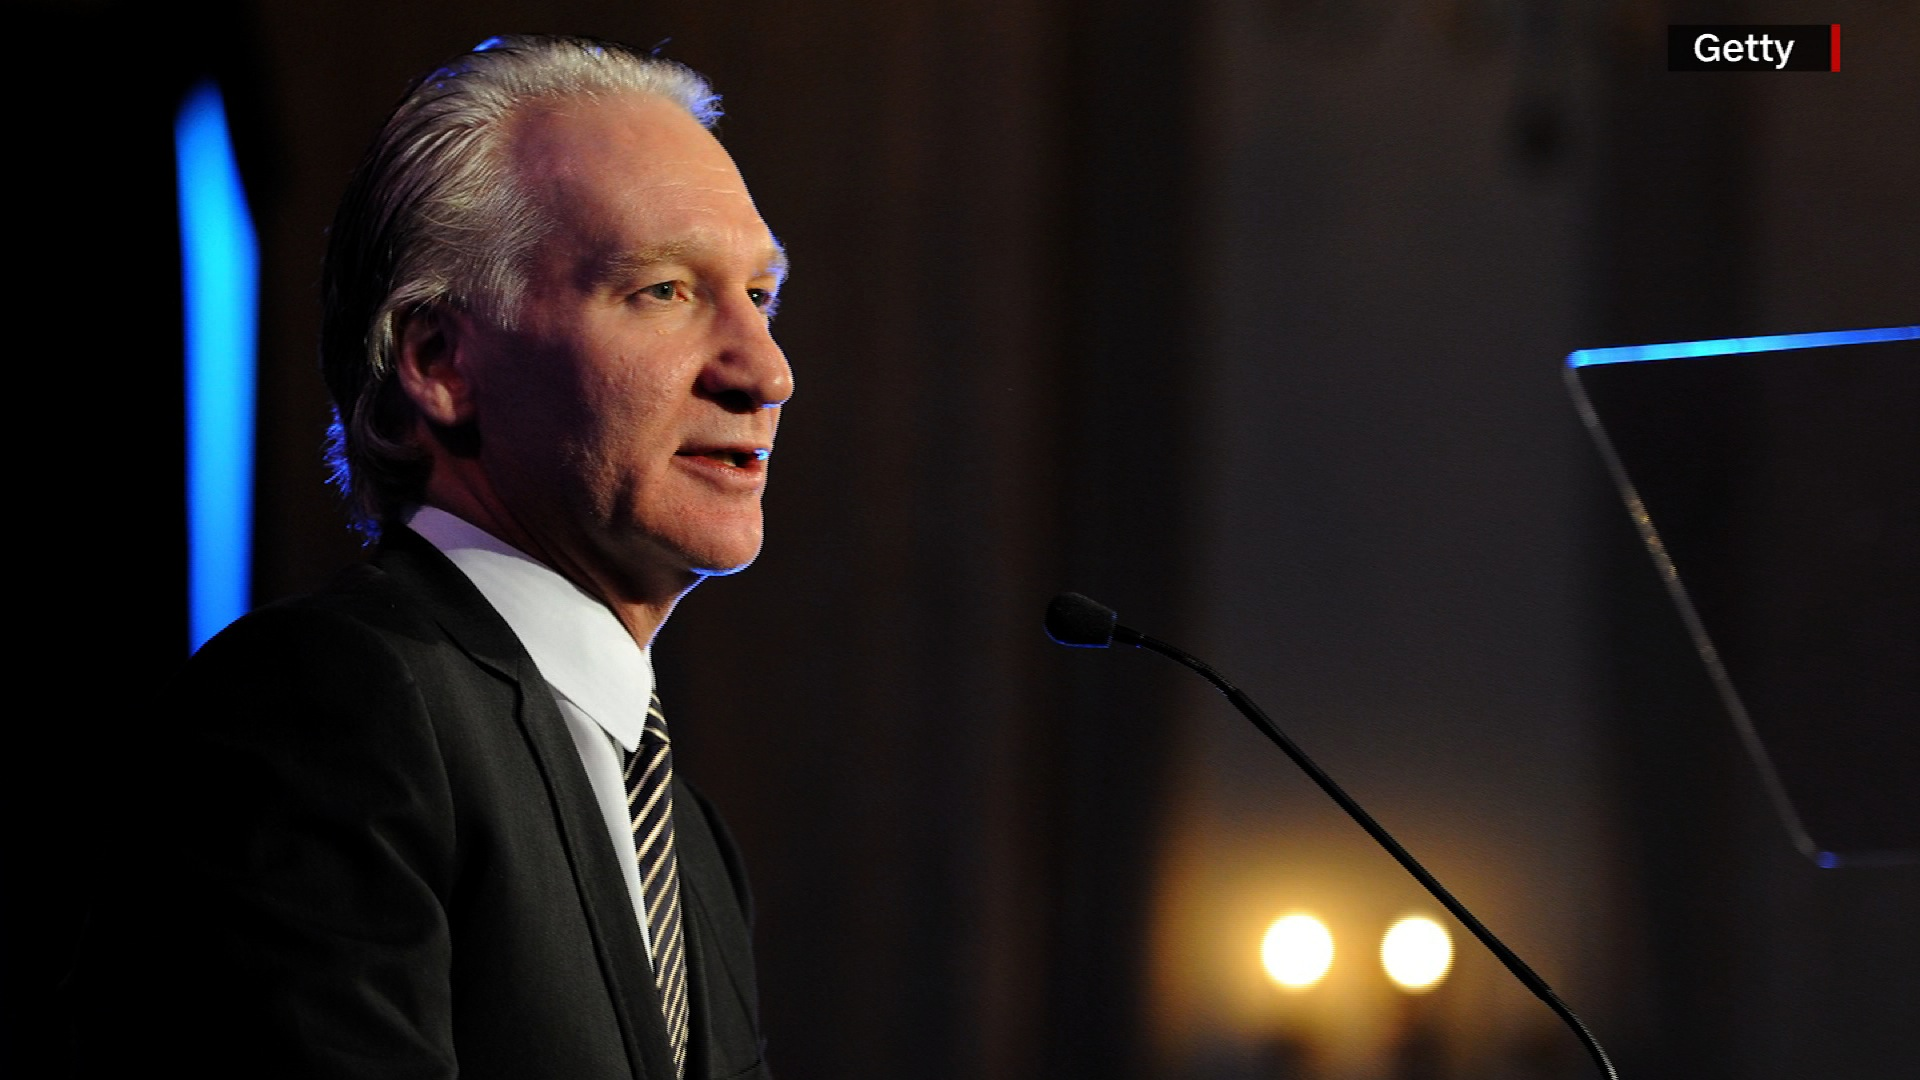 Bill Maher thanks fans following Covid-19 diagnosis